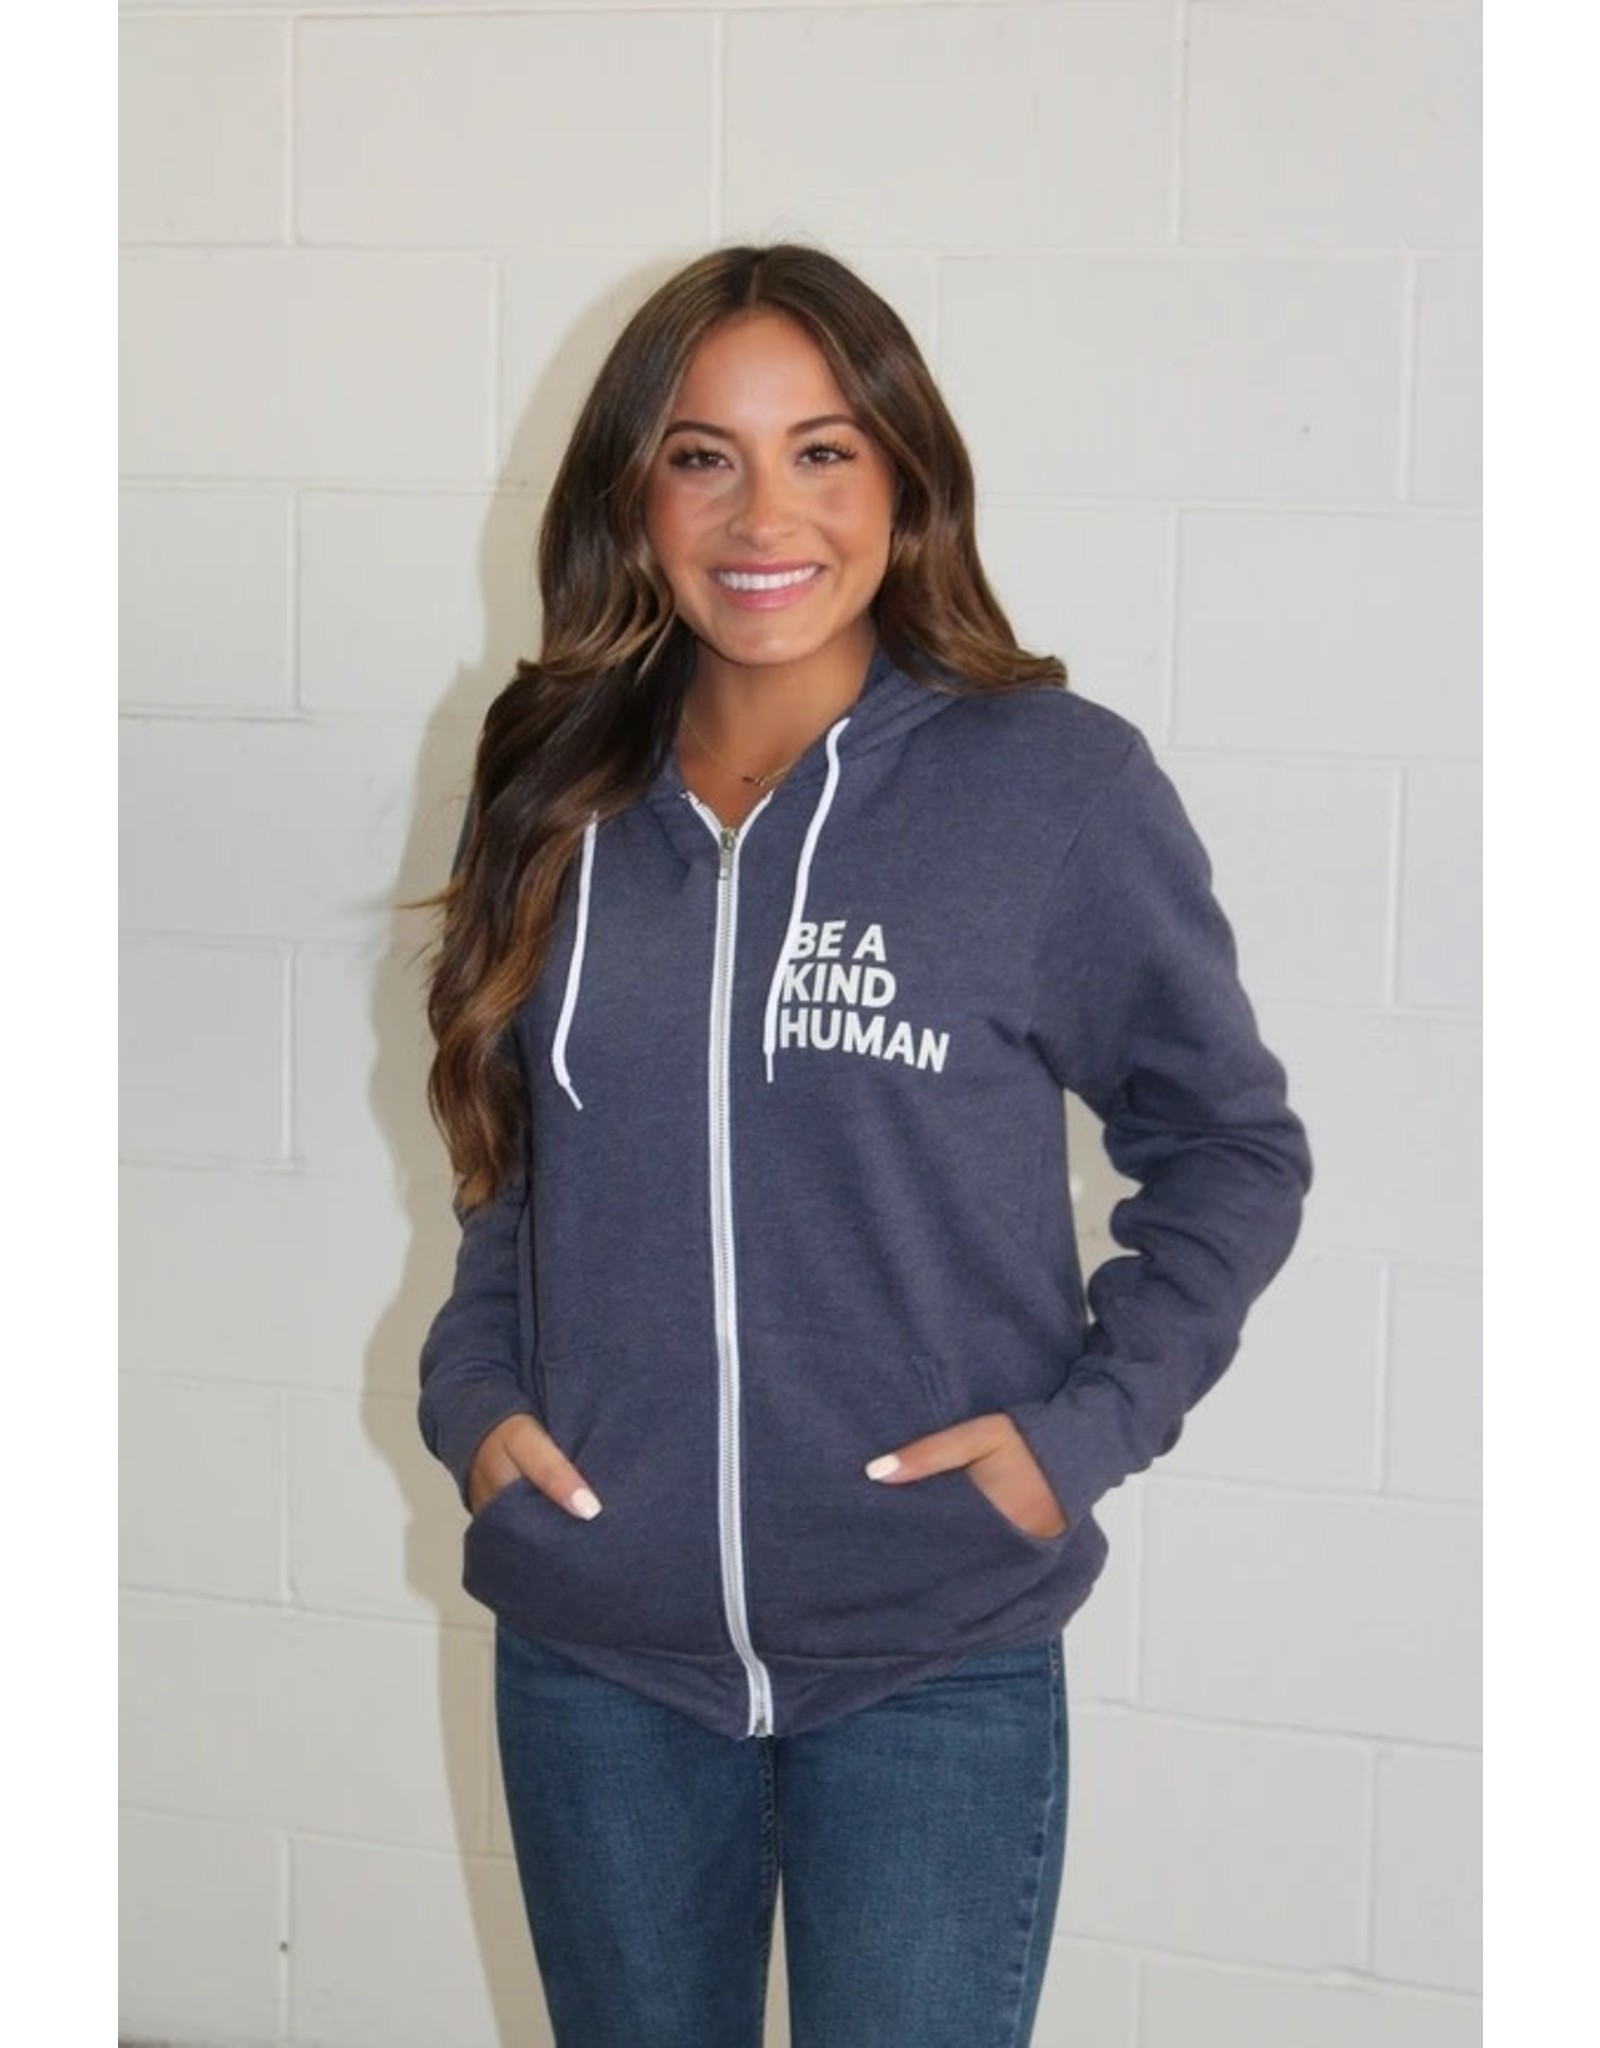 Panache Accessories Be a Kind Human Zip Up Hoodie